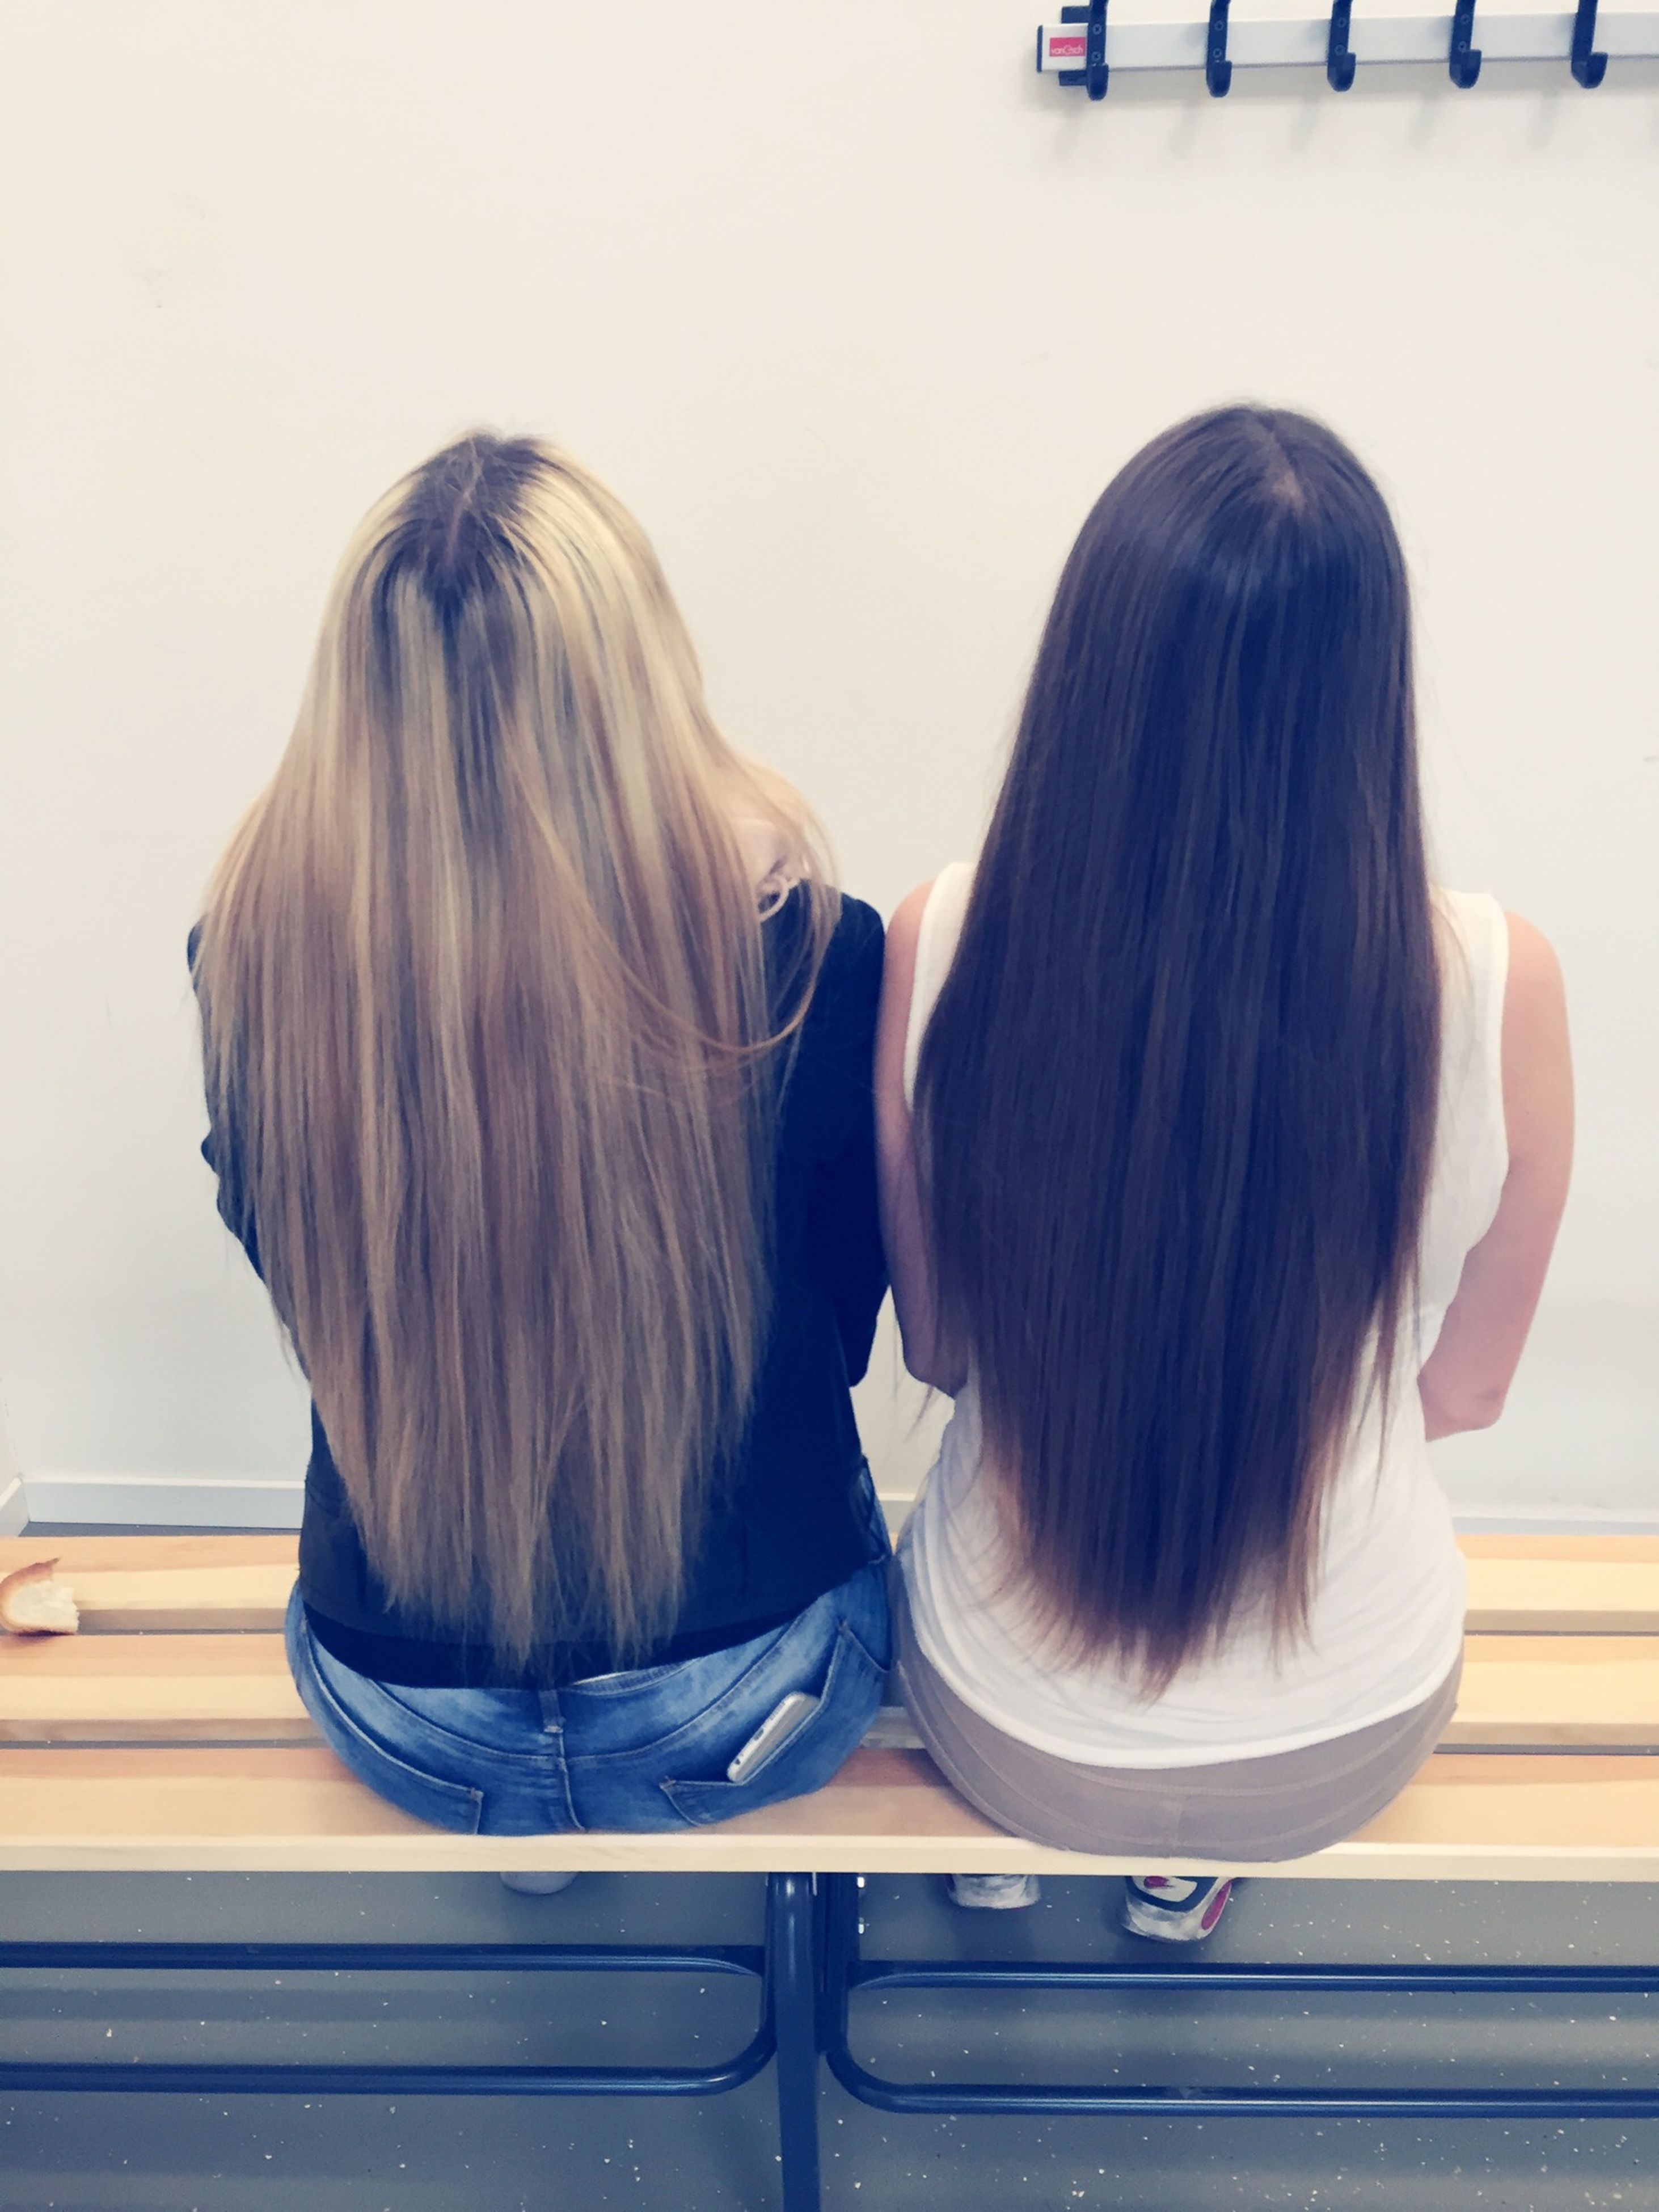 rear view, lifestyles, long hair, person, leisure activity, indoors, casual clothing, sitting, waist up, standing, young women, relaxation, side view, girls, full length, brown hair, blond hair